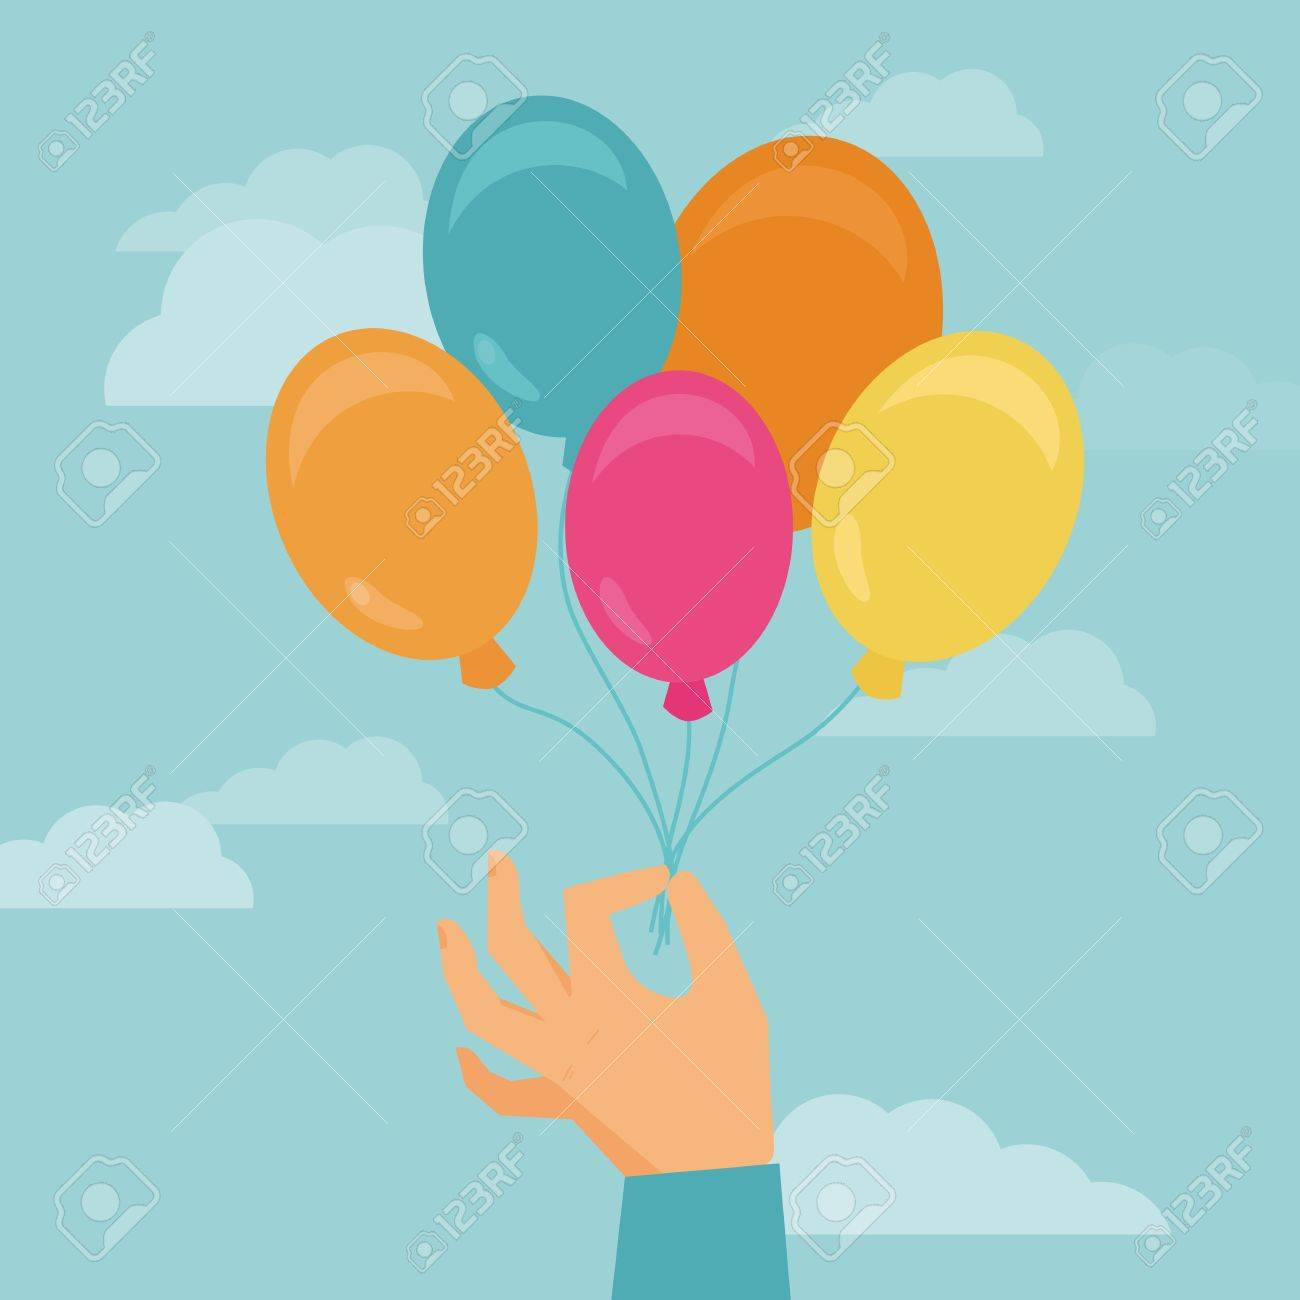 Vector hand holding balloons - greeting card in flat style Stock Vector - 21700907